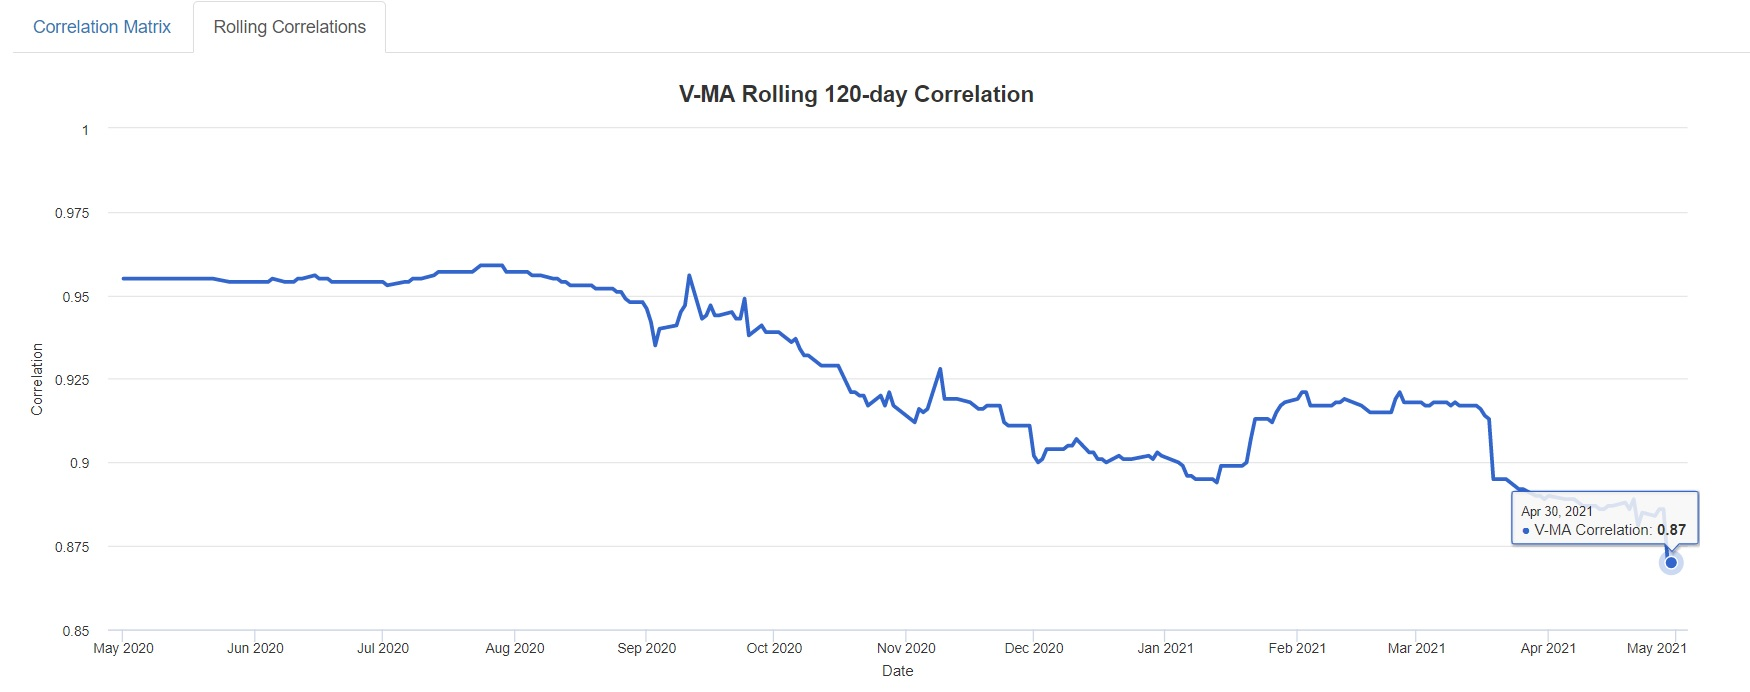 V-MA Rolling 120-day Correlation MAY 2021